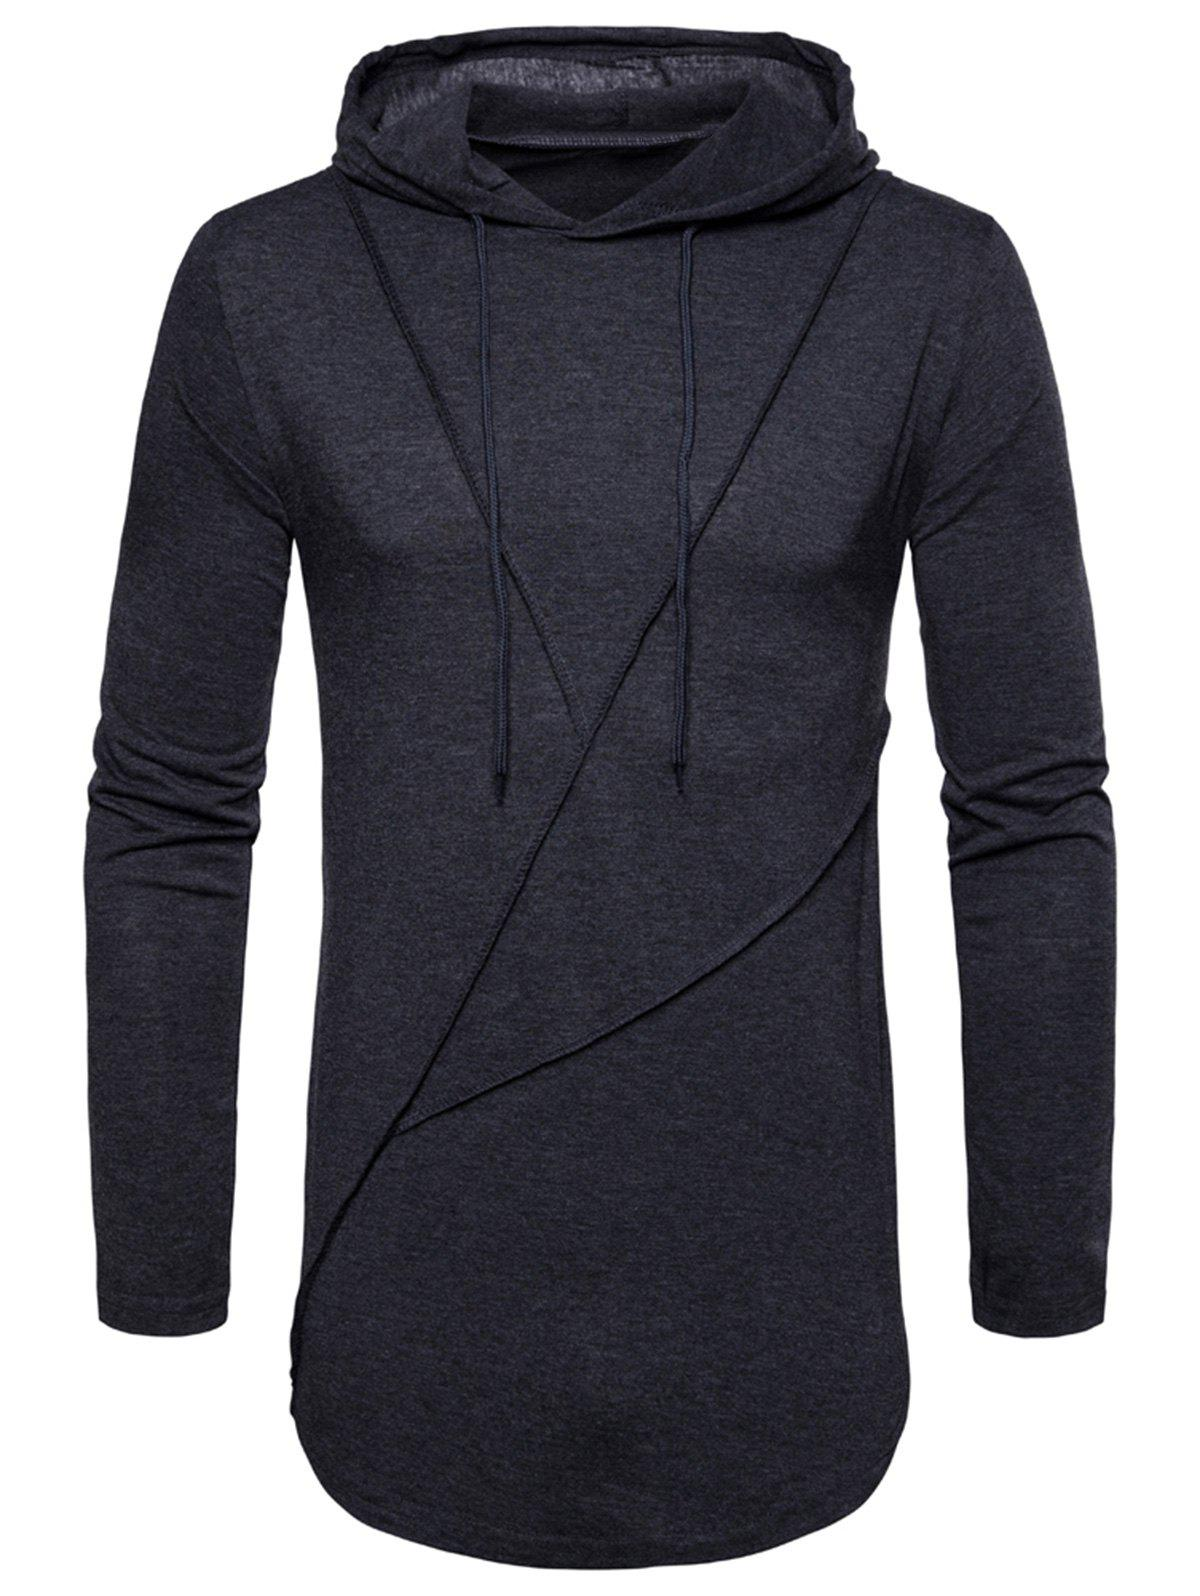 Zip Hem Solid Color Long Sleeve Hooded T-shirt - DEEP GRAY M